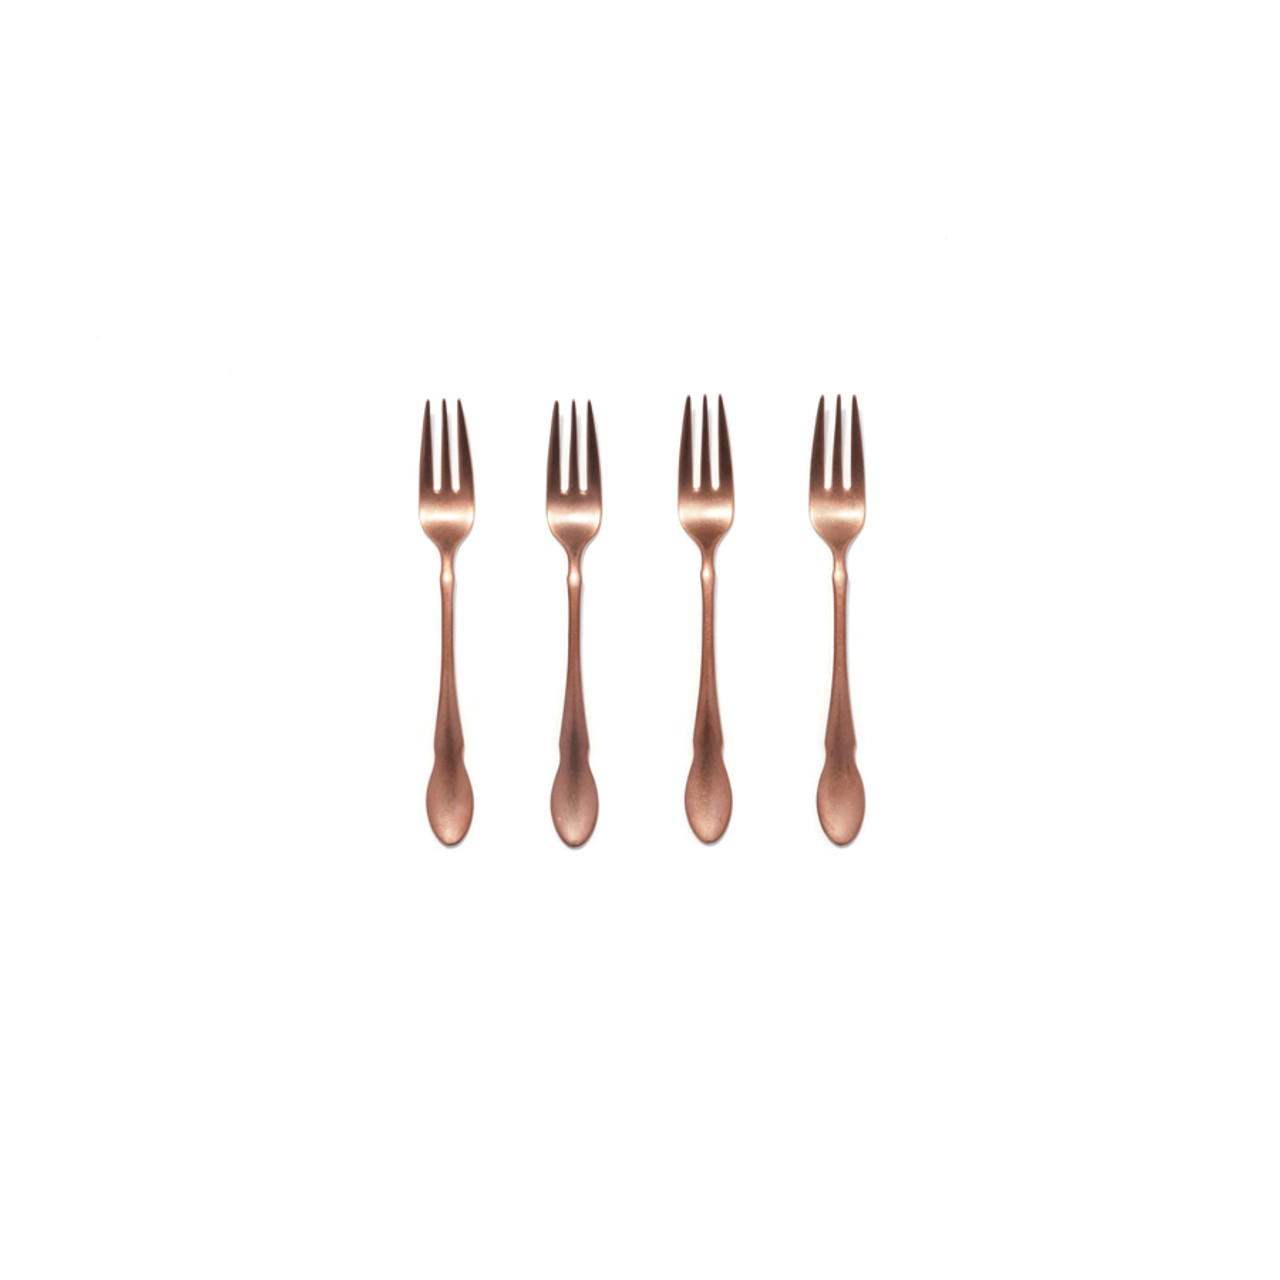 Maple - 4 piece cocktail fork set